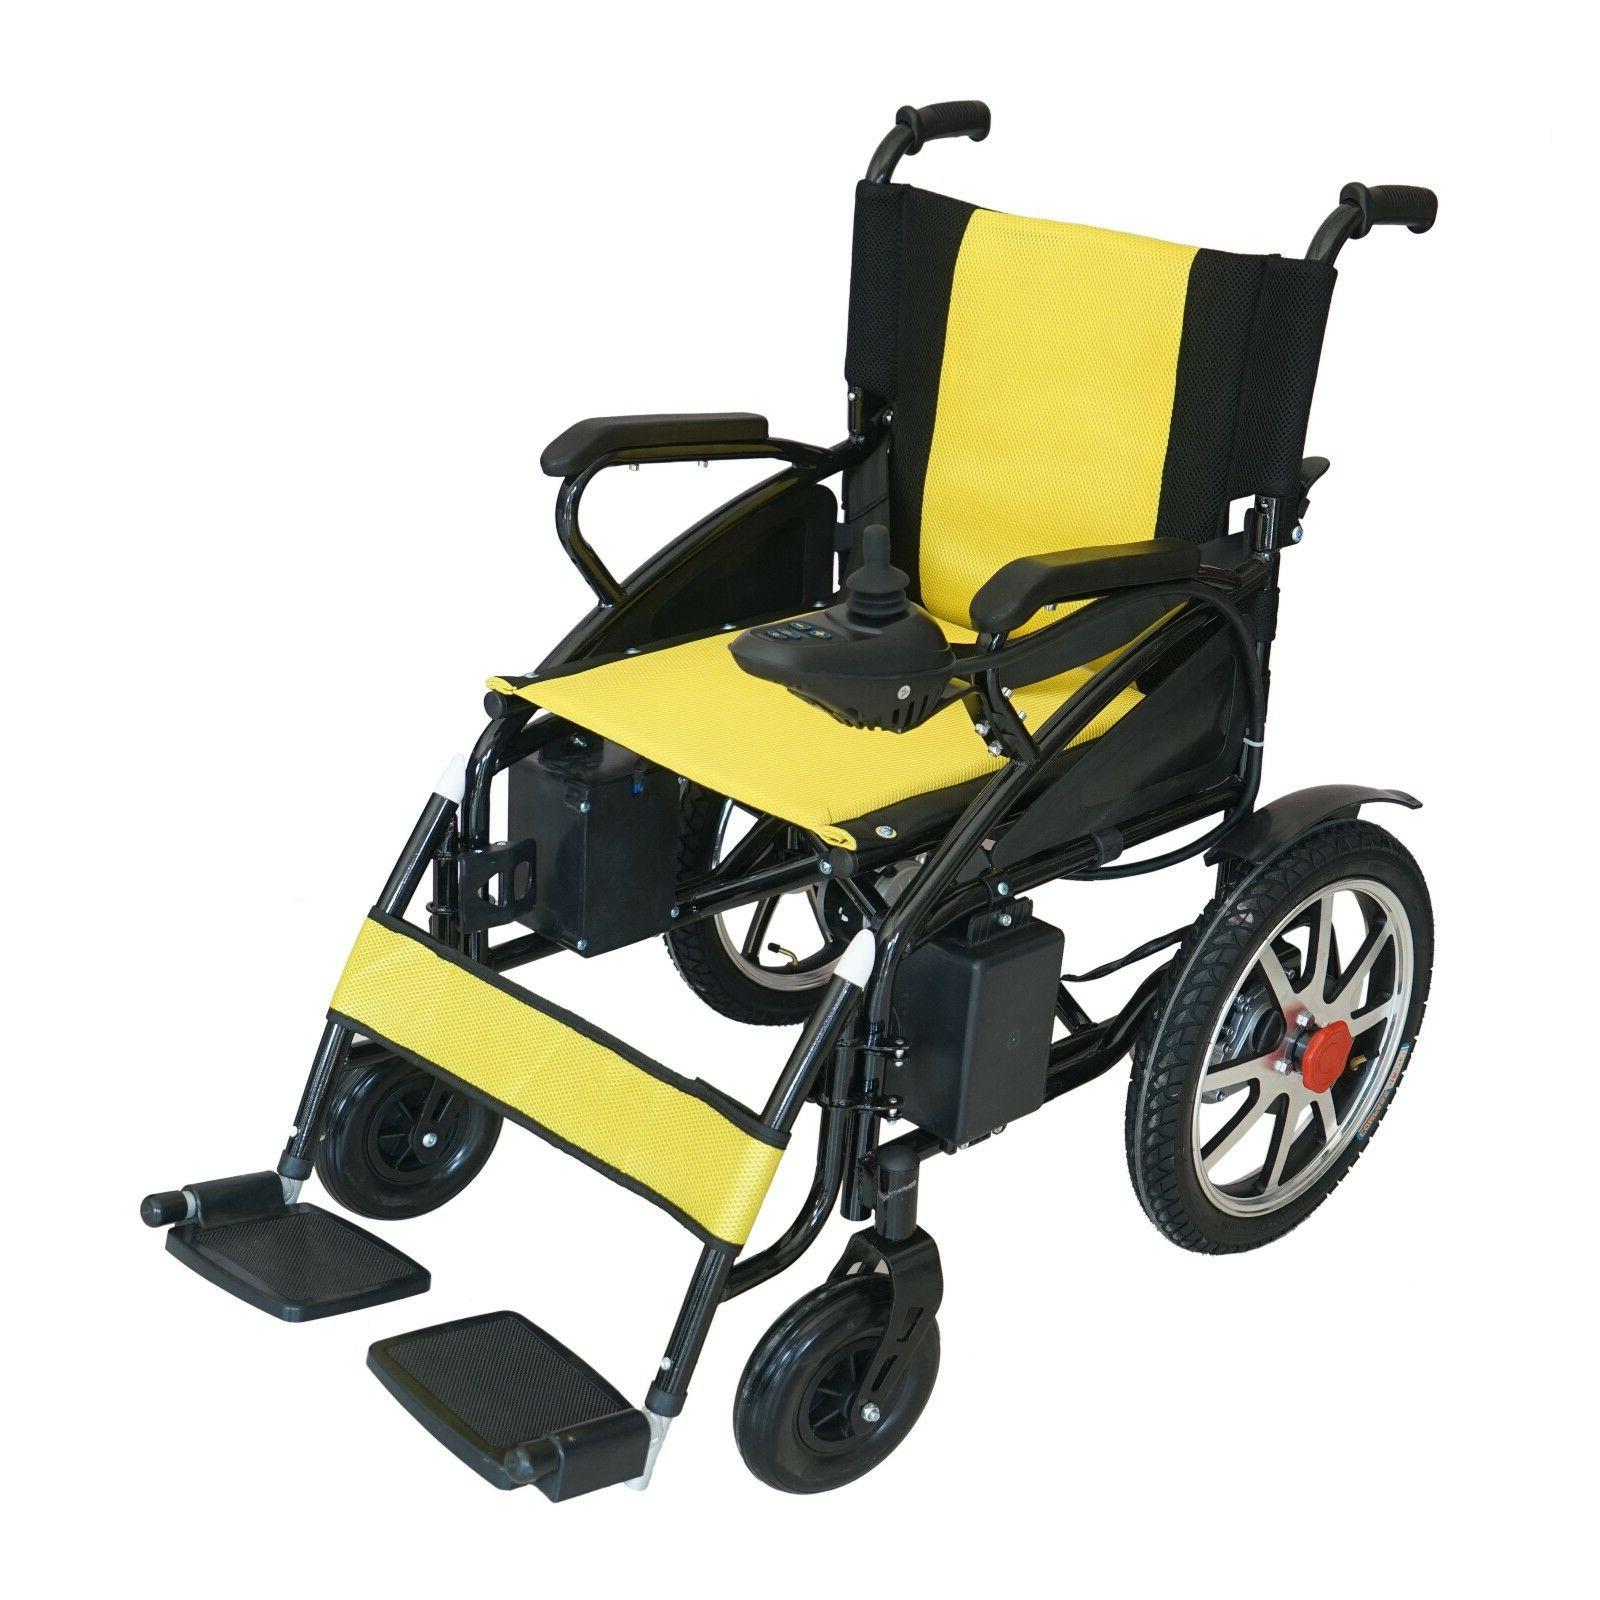 2019 new comfygo fda approved transport friendly